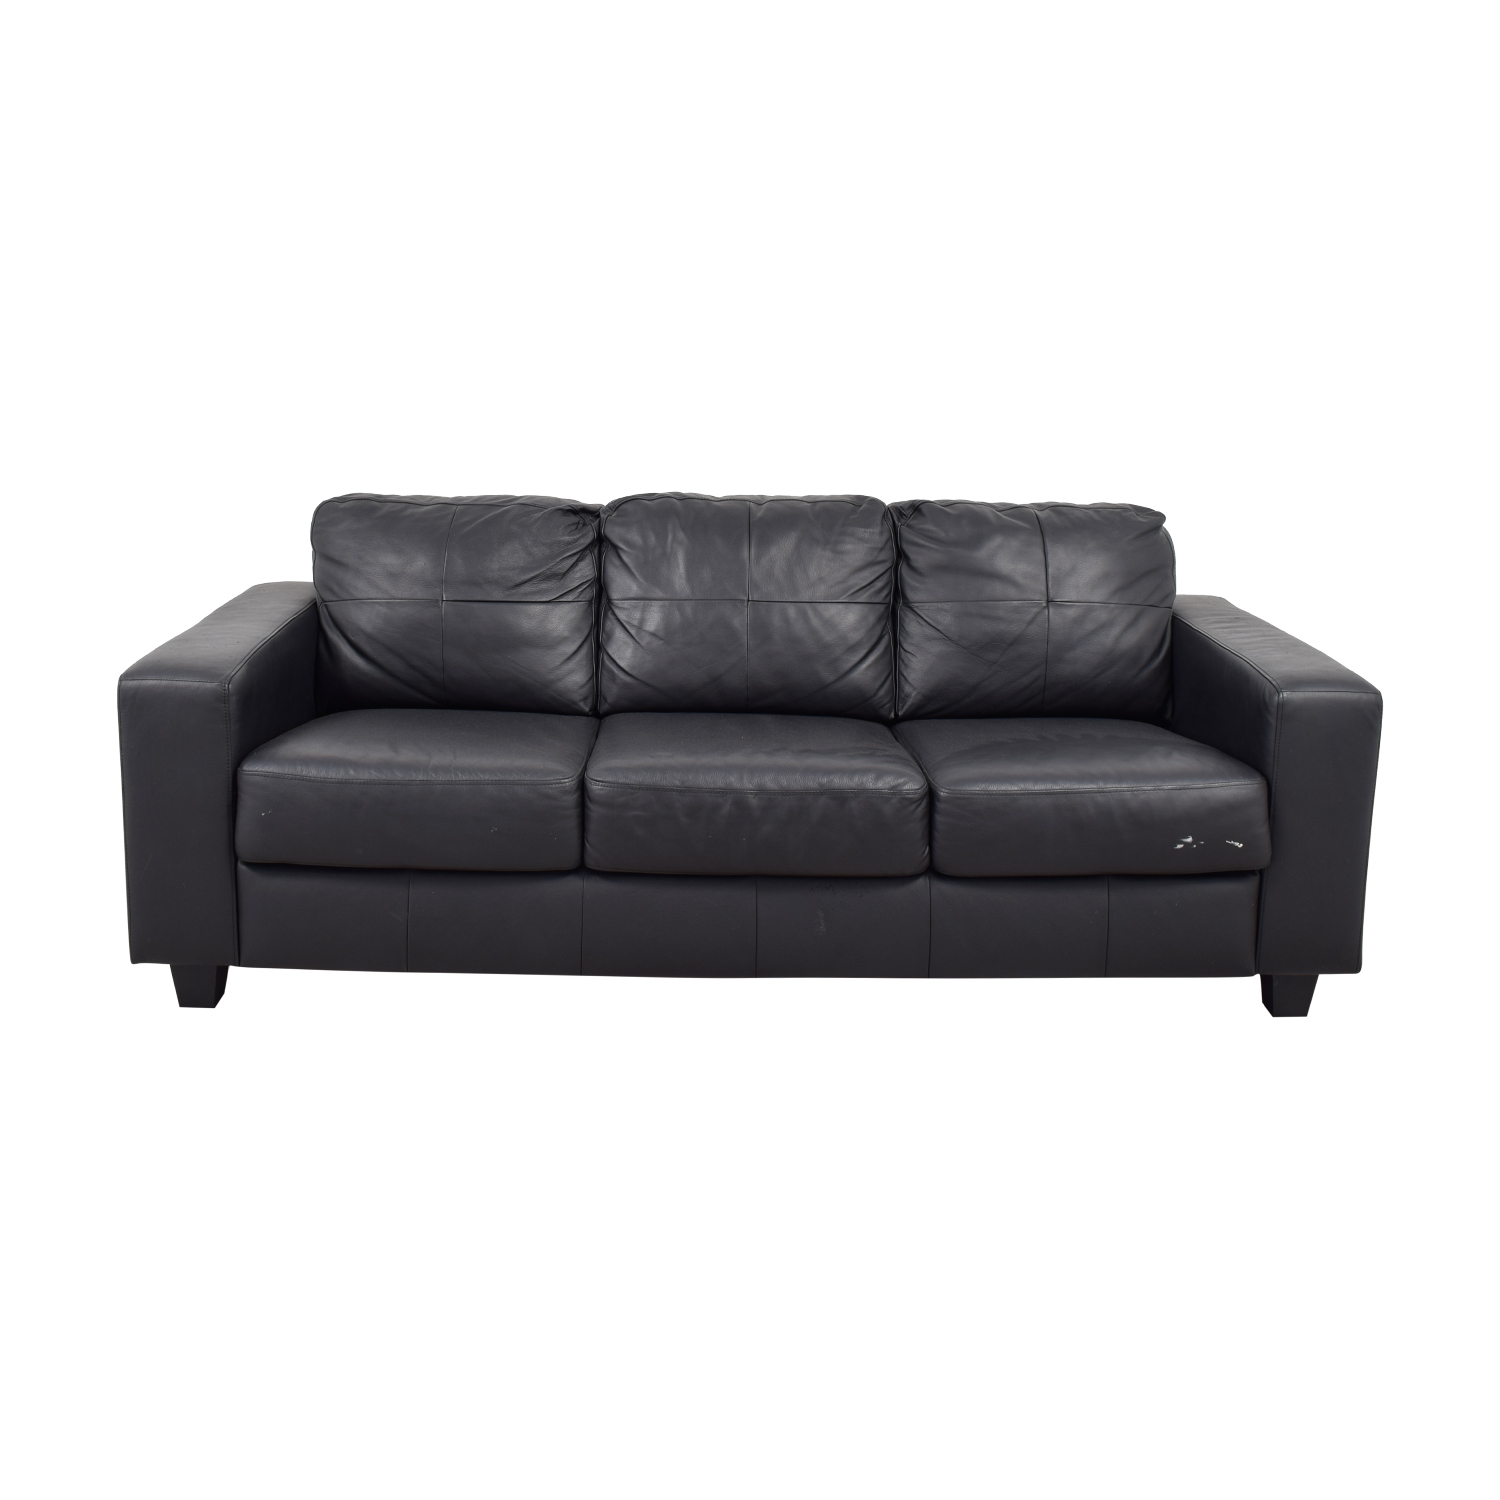 Ikea Ikea Black Leather Three Cushion Sofa For Sale